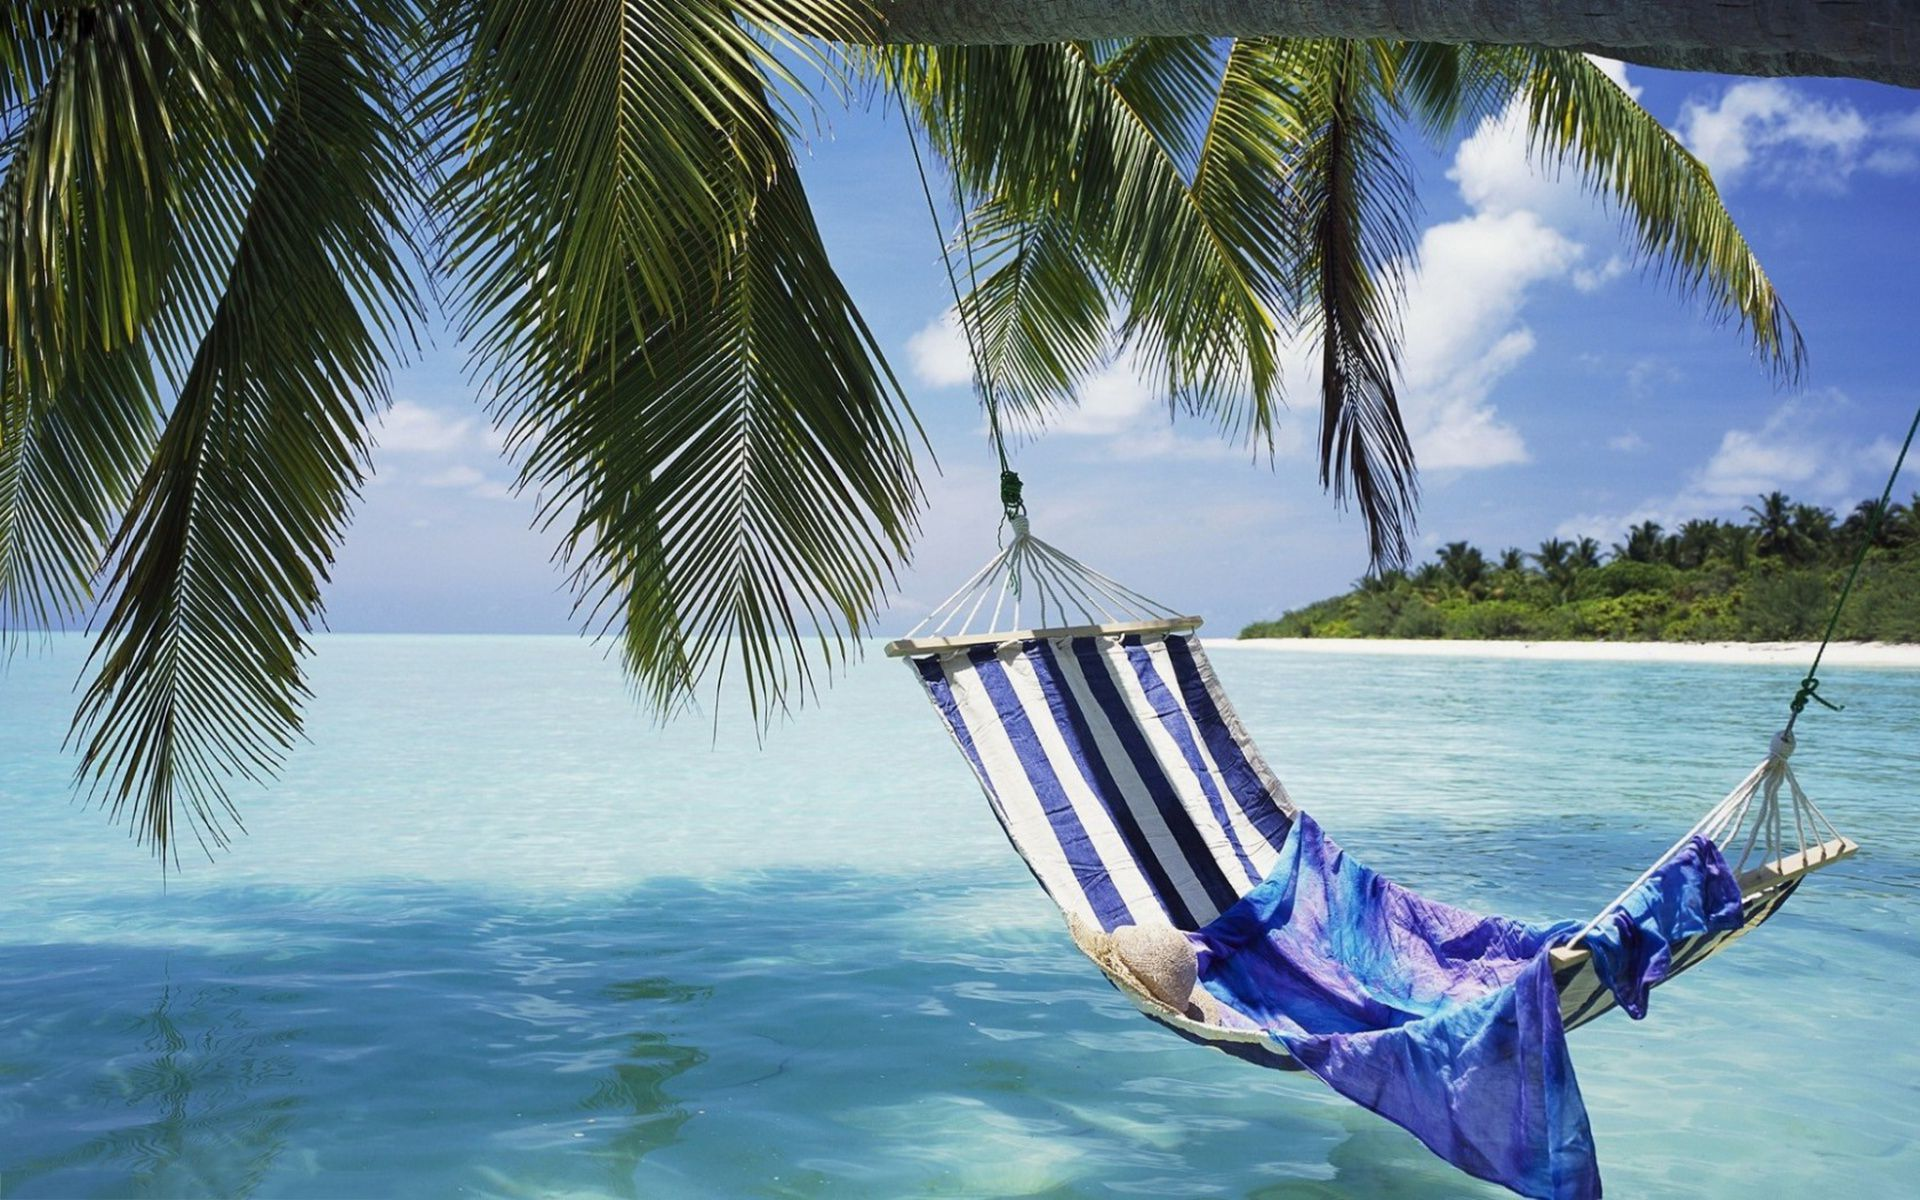 hammock Download Hammock In Beach Wallpaper Background